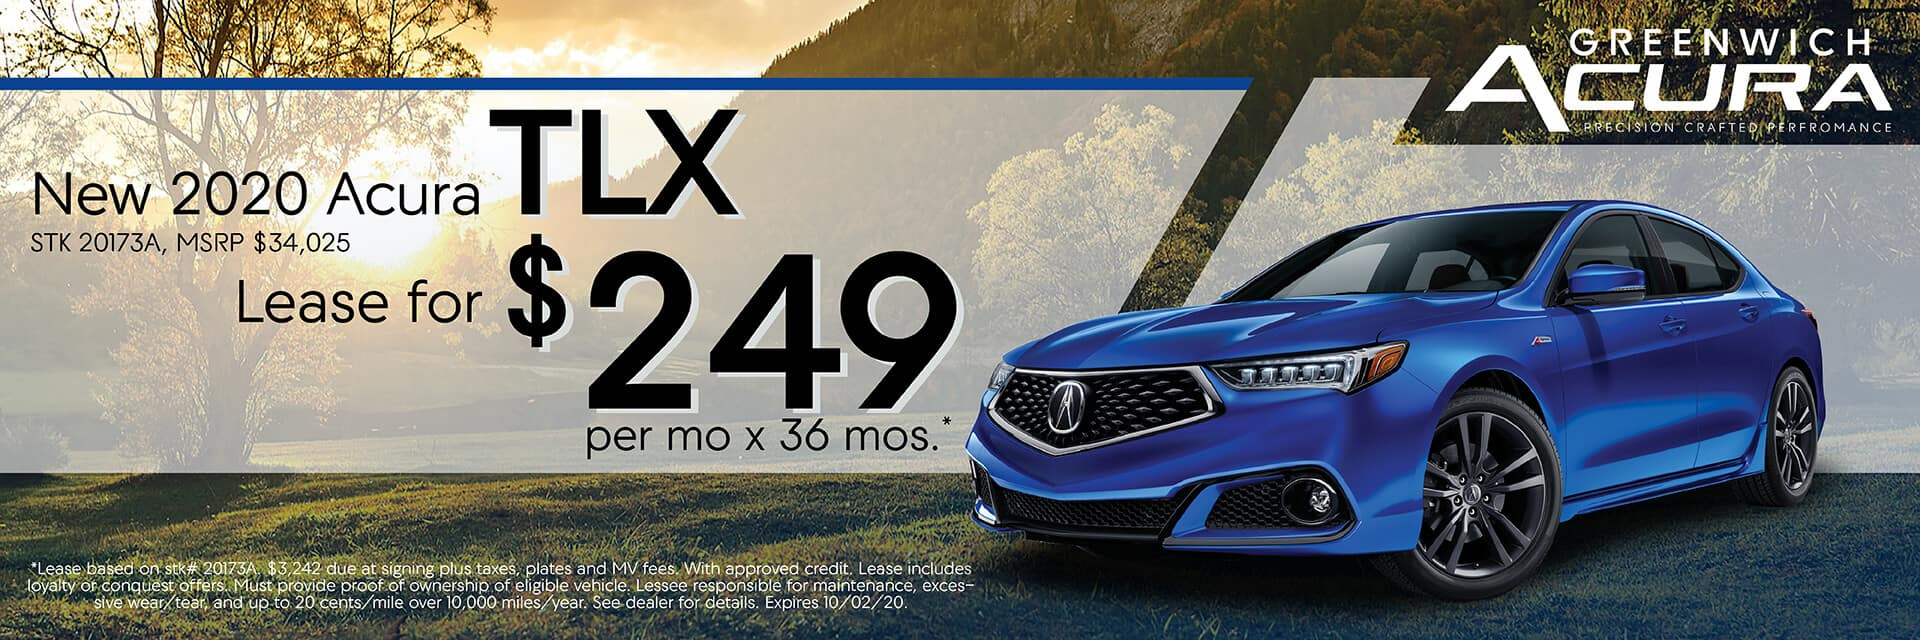 2020 Acura TLX, Lease for $249/Mo. x 36 Mos. | Greenwich, CT